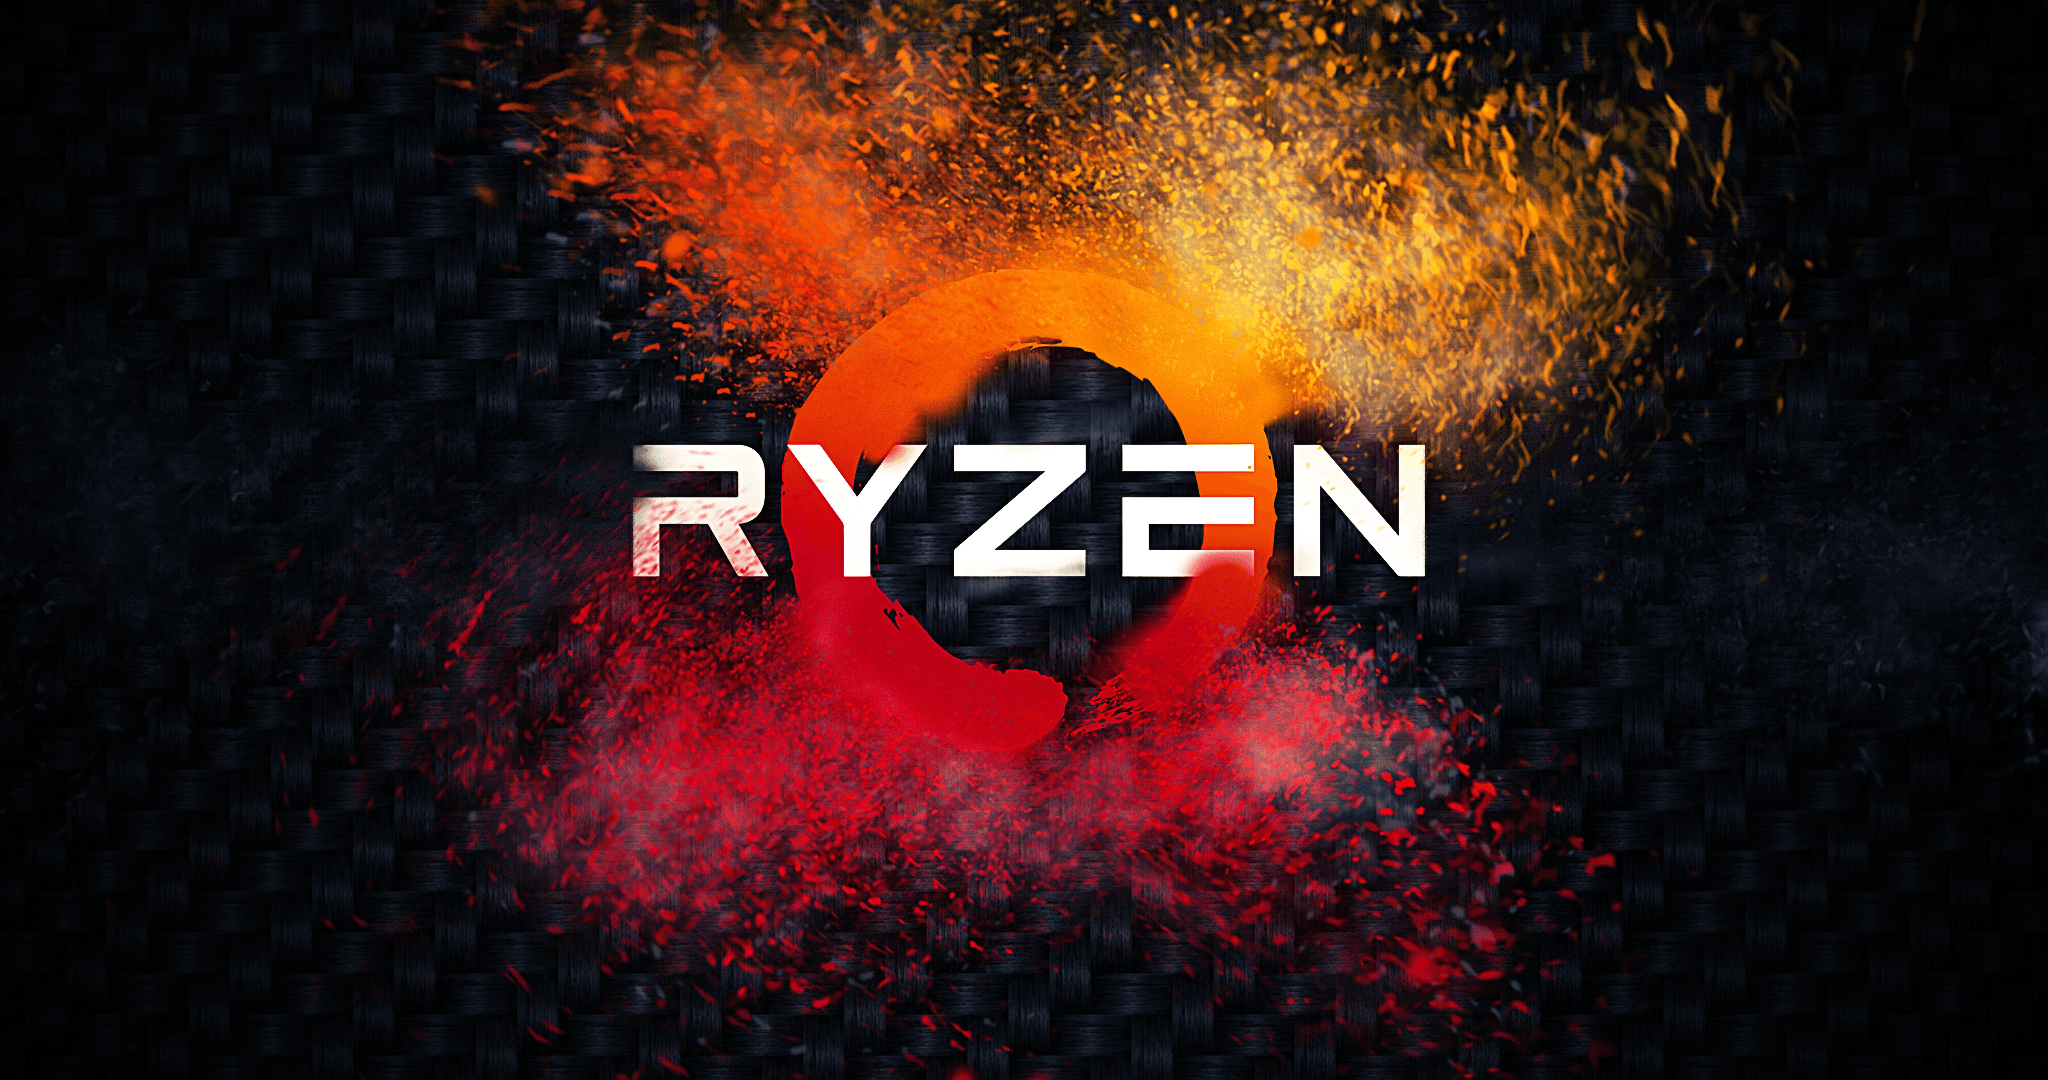 Amd Ryzen Wallpapers Wallpaper Cave